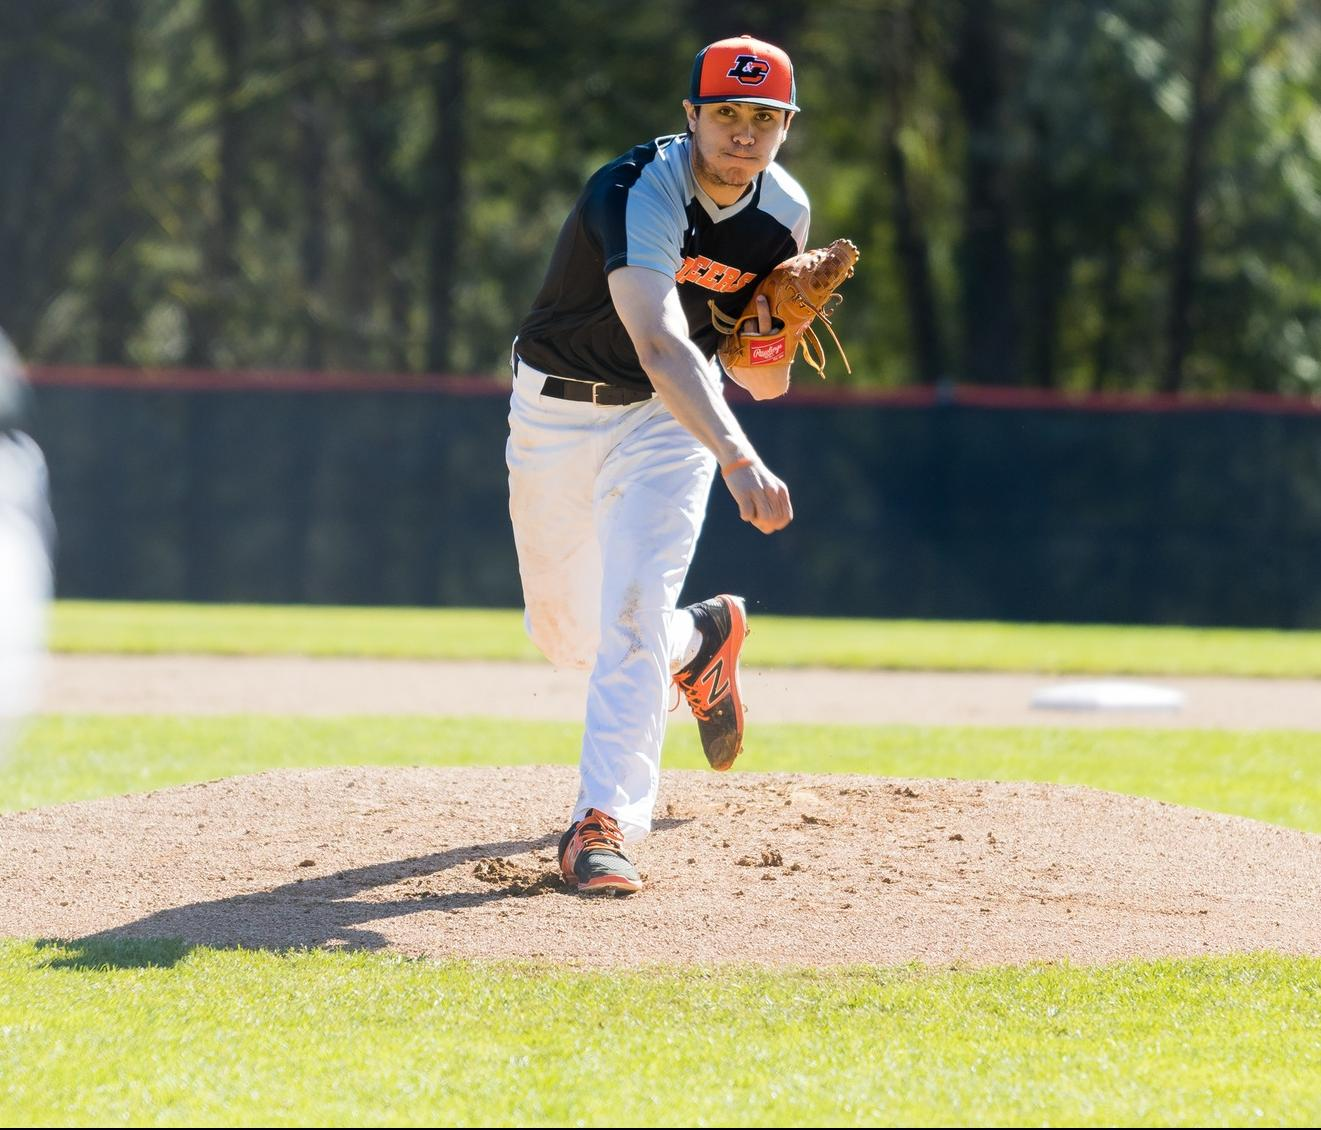 Pioneers lose both games to Pacific